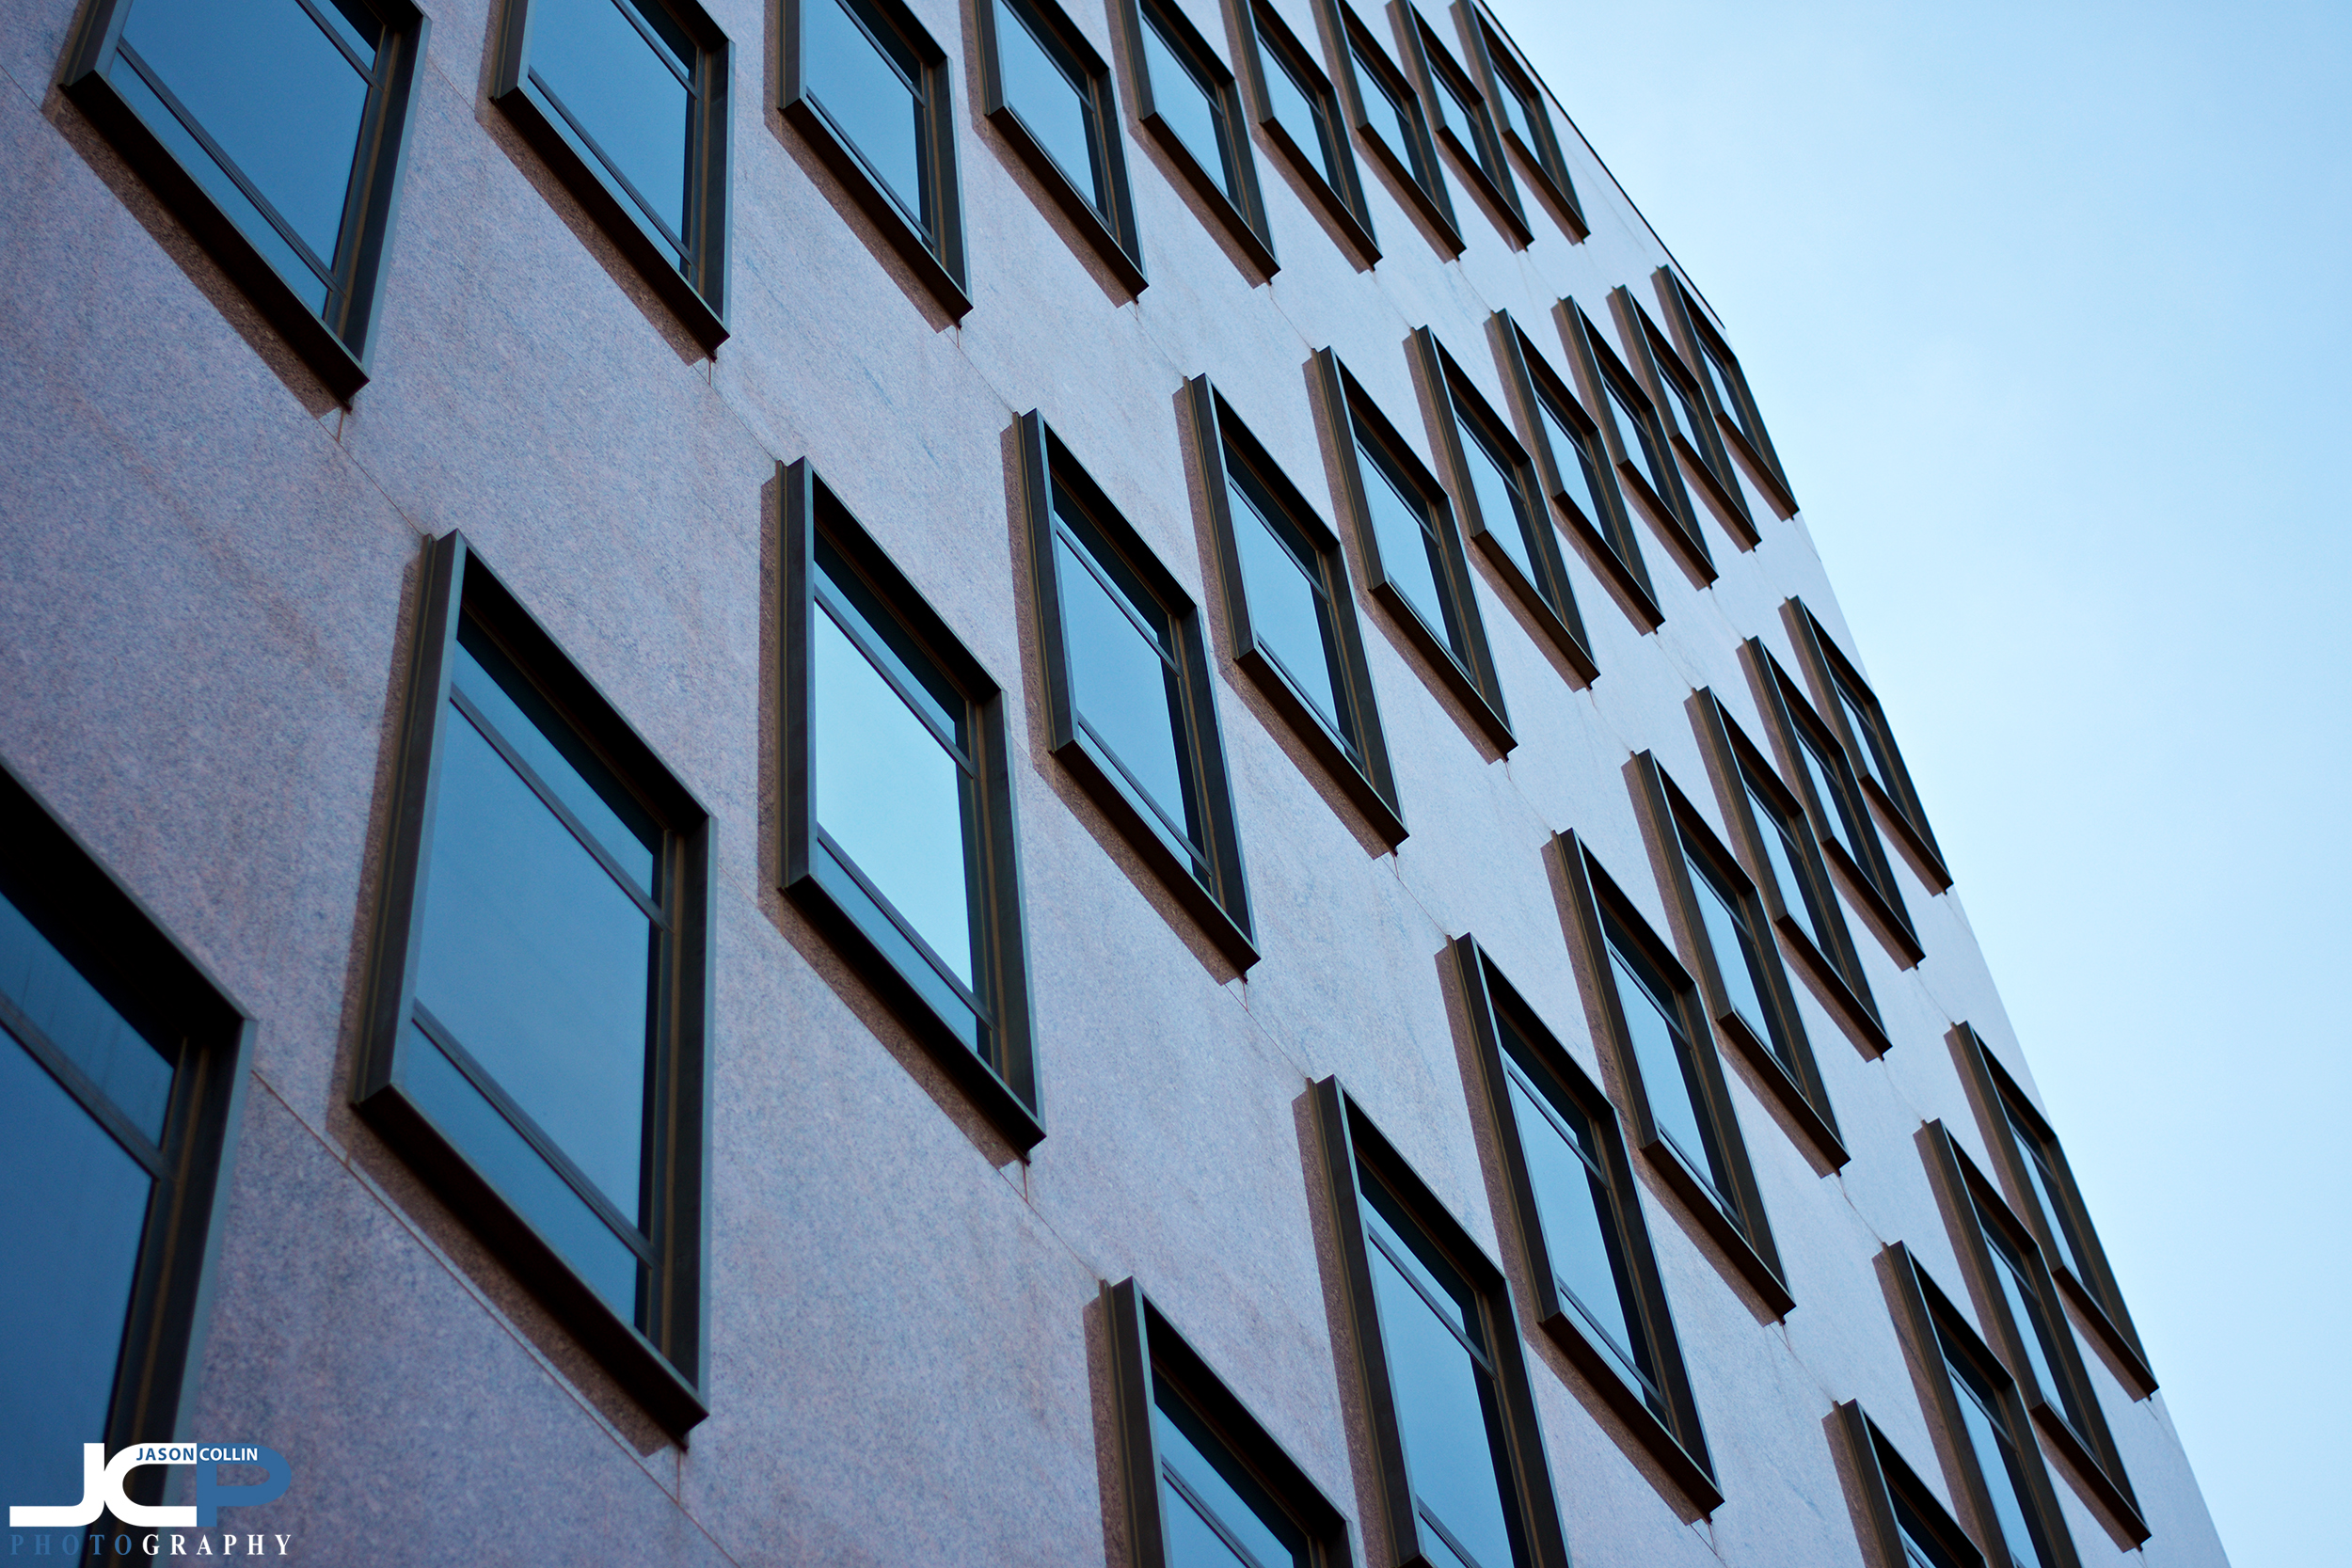 Repeating patterns are something I like to feature in architecture photography - Albuquerque New Mexico